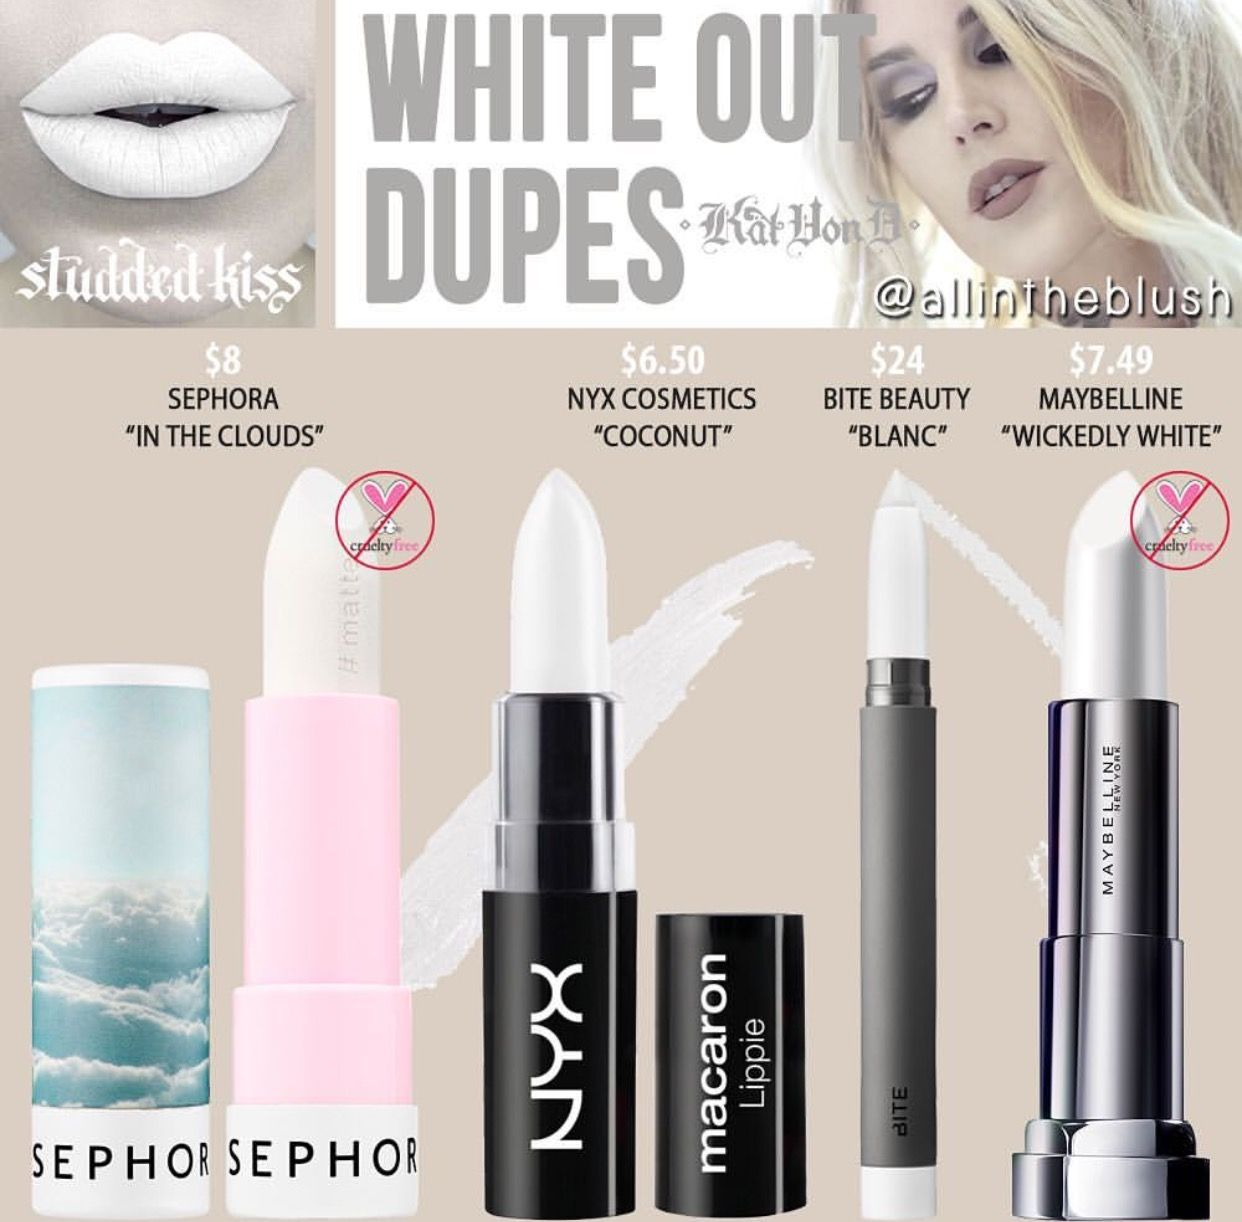 Kat Von D lipstick dupes in the shade White Out Pinterest